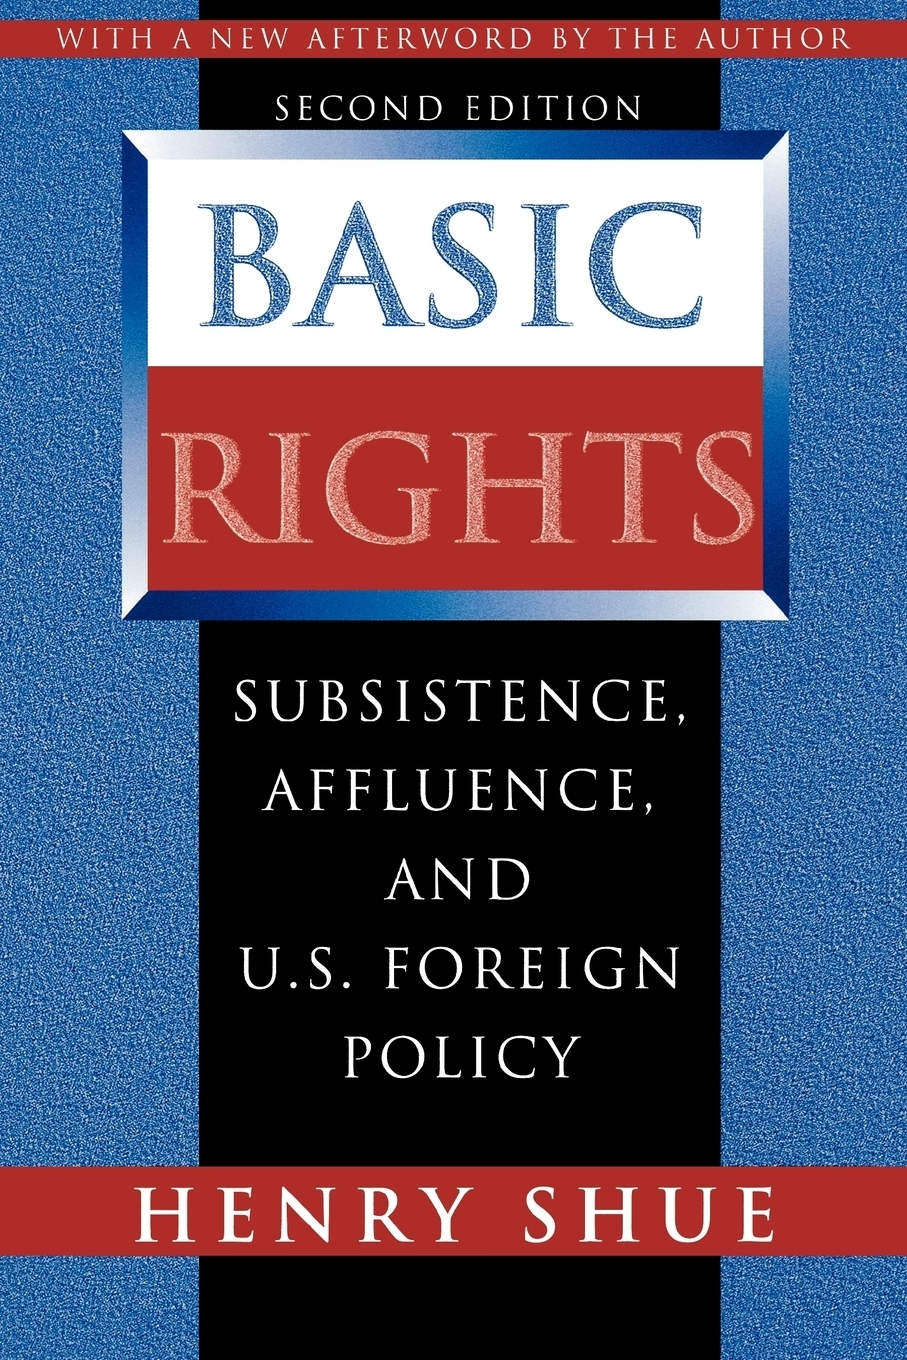 Basic Rights. Subsistence, Affluence, and U.S. Foreign Policy - Second Edition